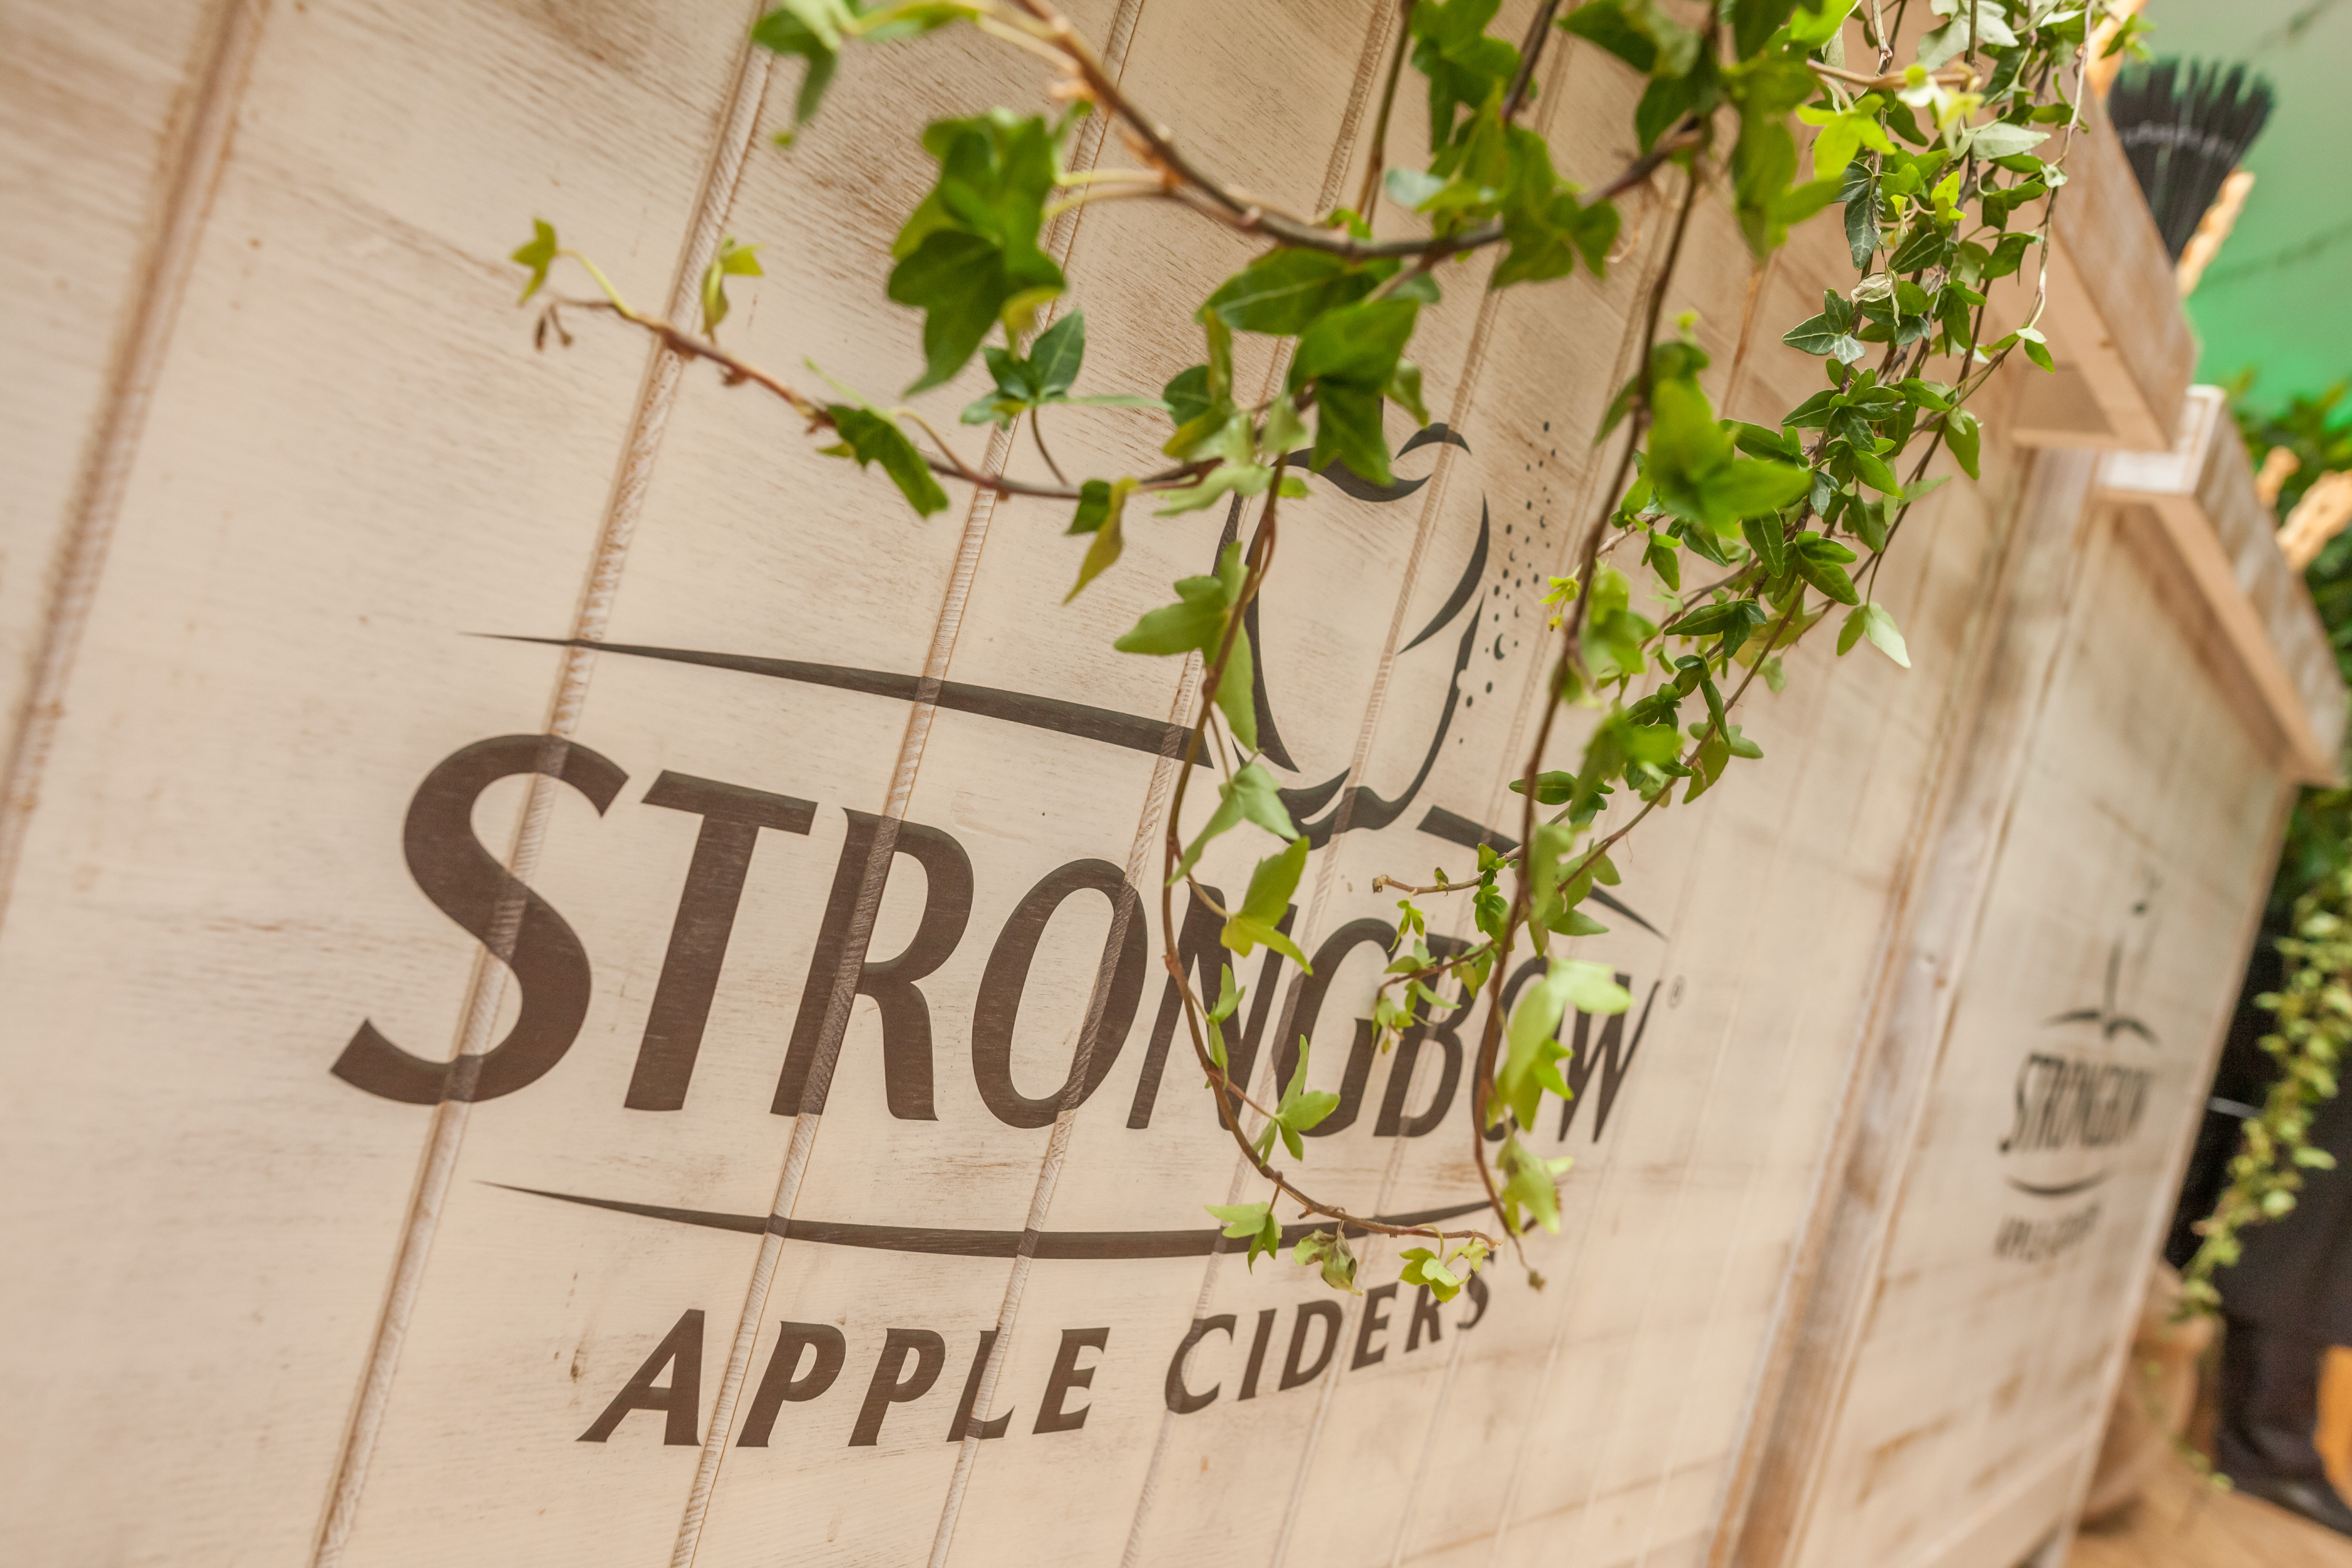 Strongbow Aplletone Party a adus natura in oras